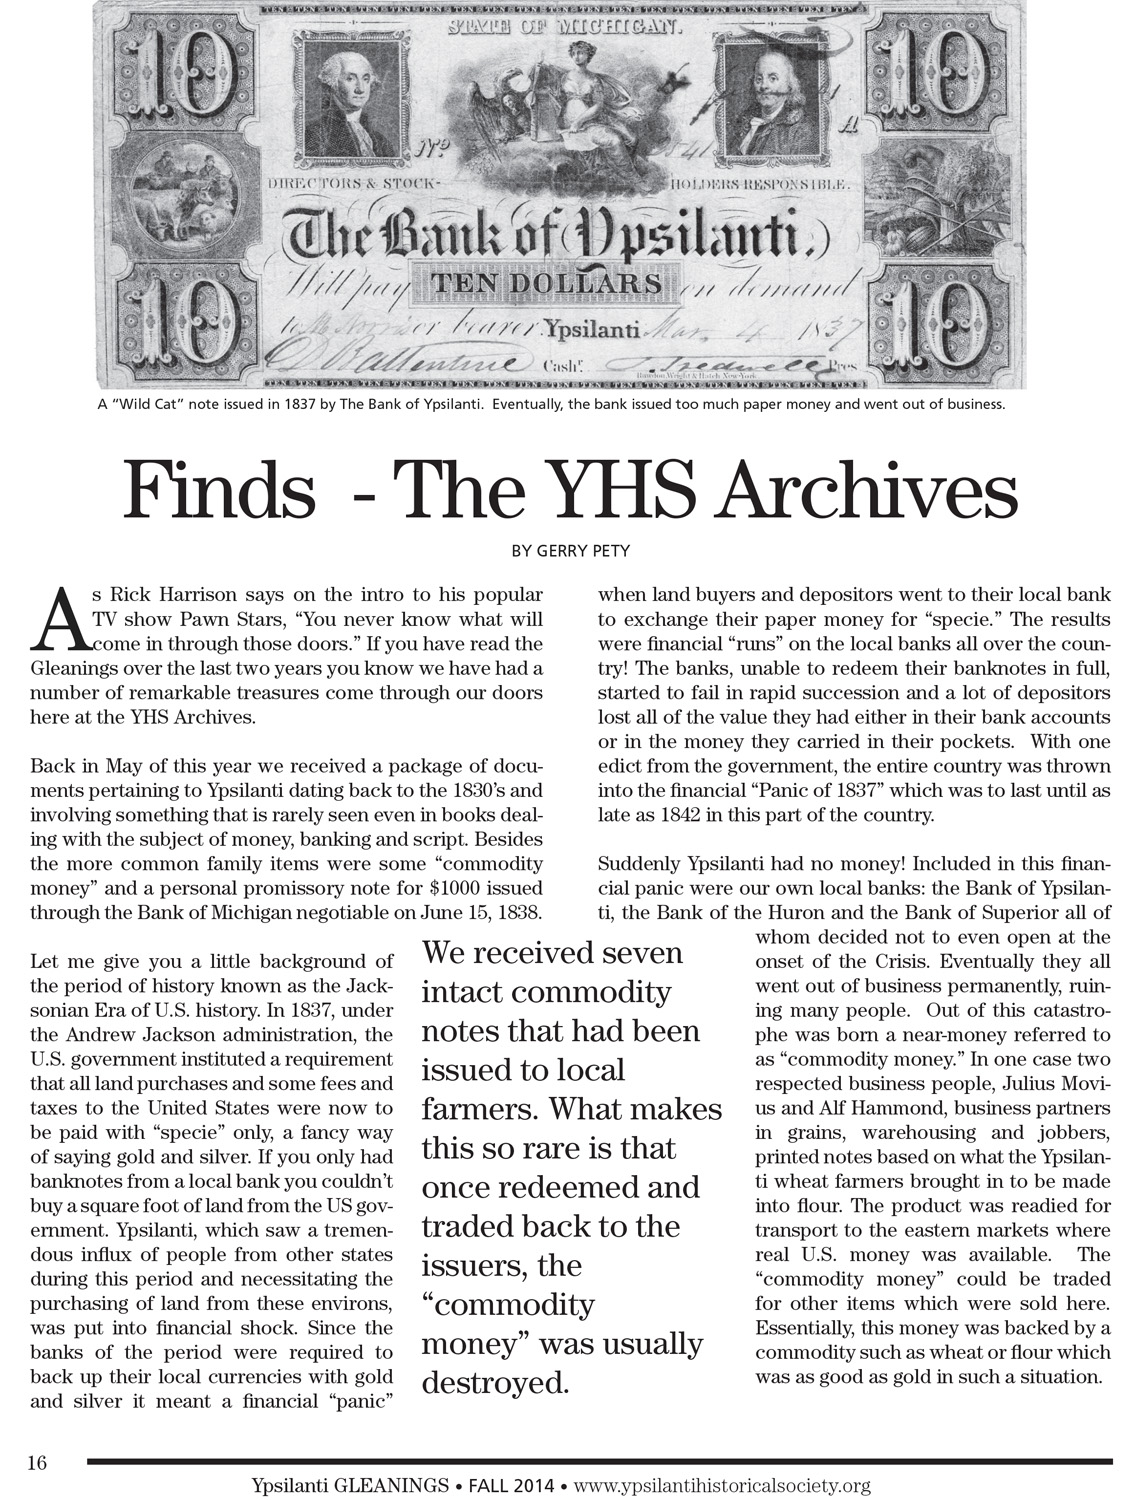 Finds  - The YHS Archives image